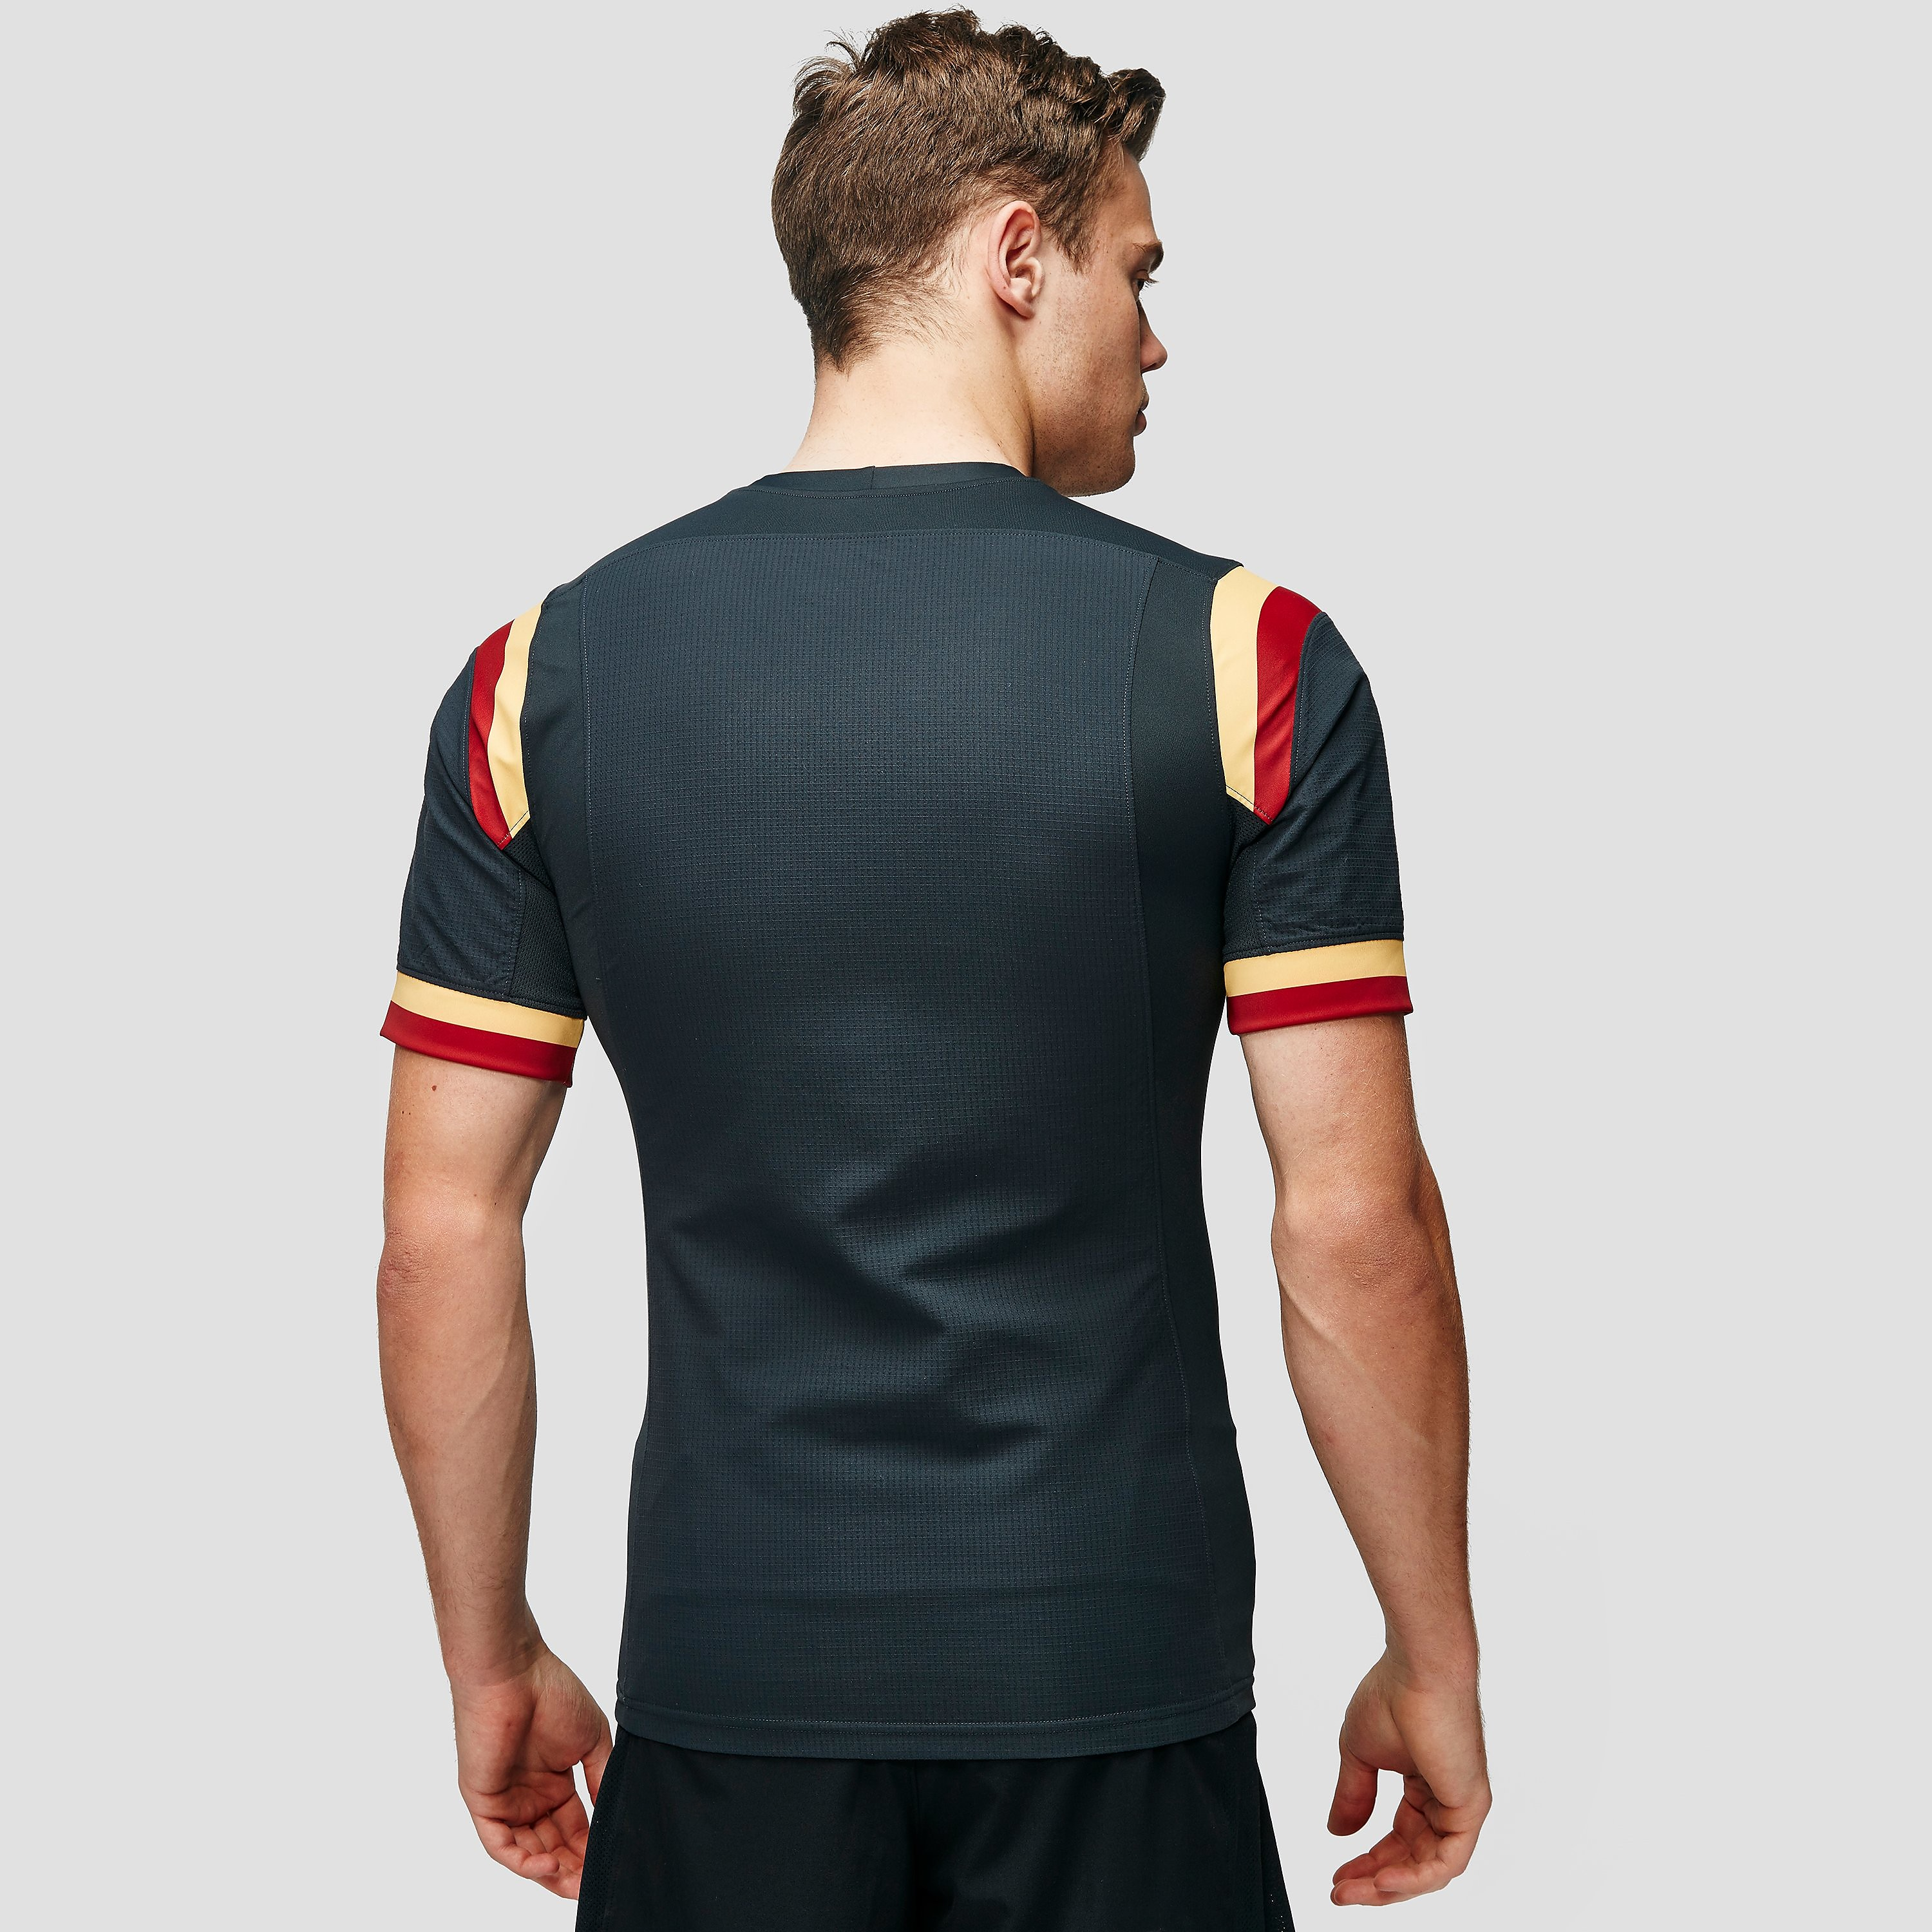 Under Armour WALES Alternative 2015/16 Gameday Men's Rugby Jersey